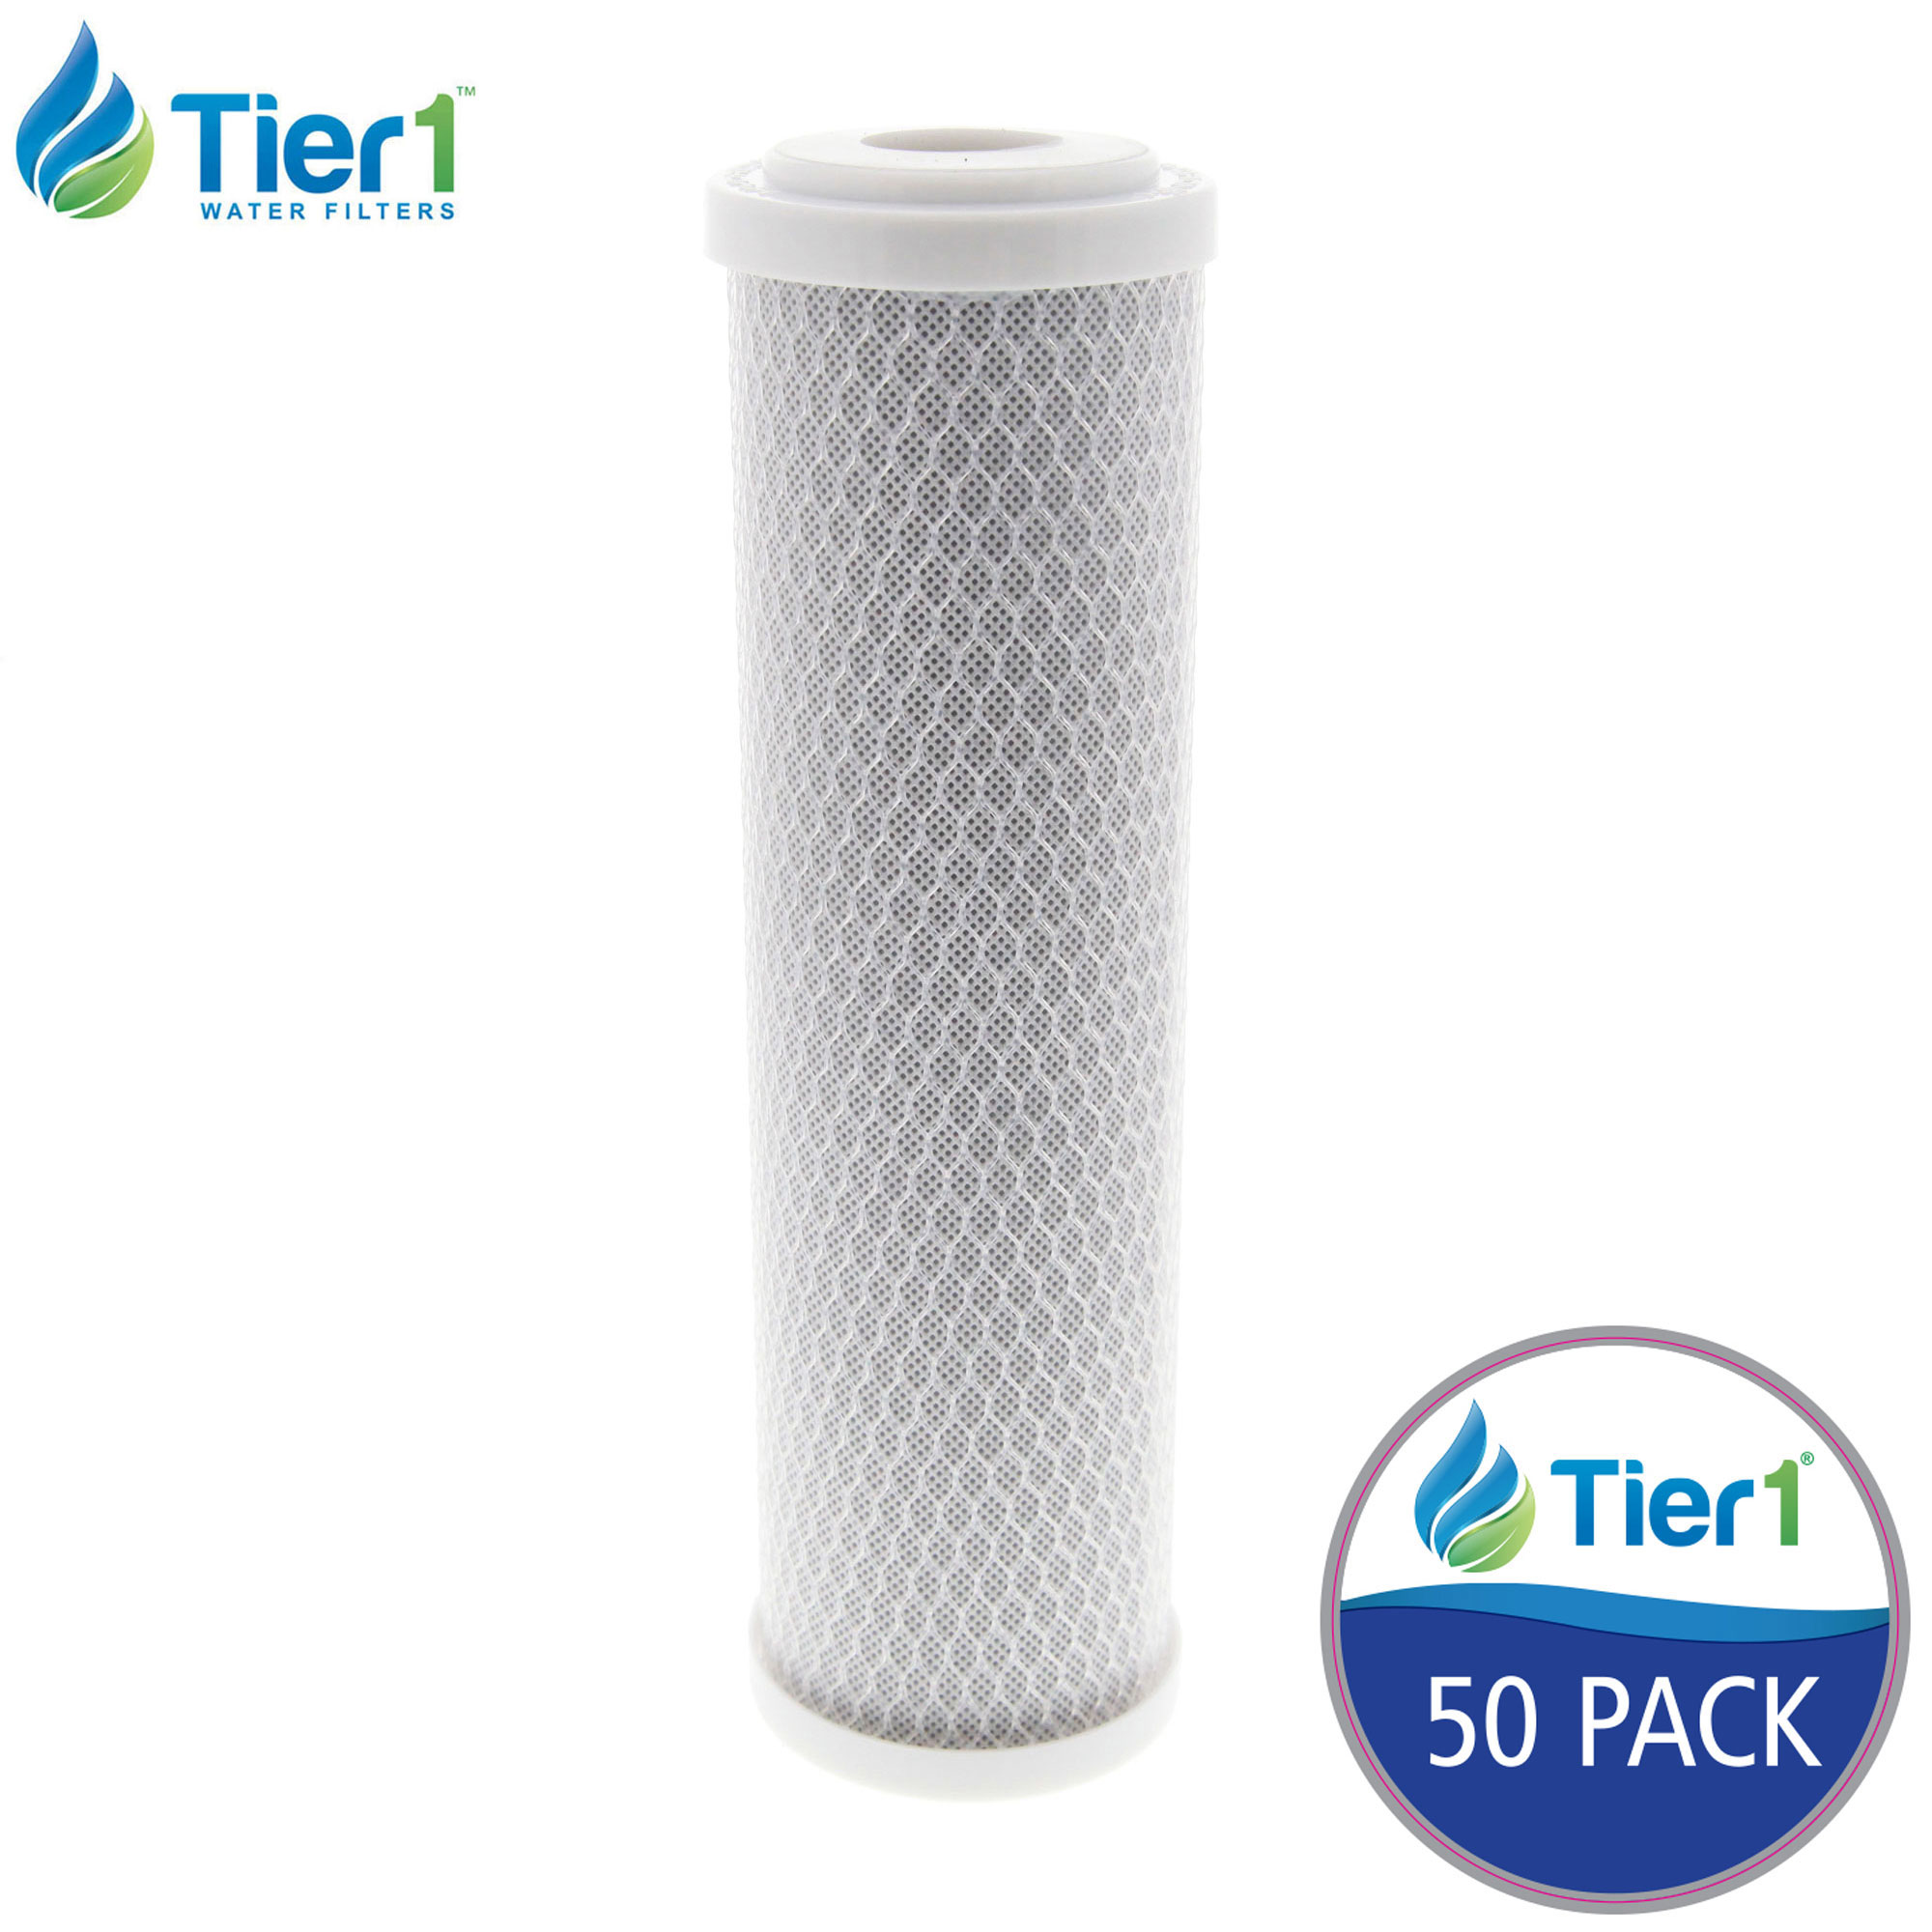 Tier1 EPM-10 10 Micron 10 x 2.5 Carbon Block Pentek Comparable Replacement Water Filter 50 Pack